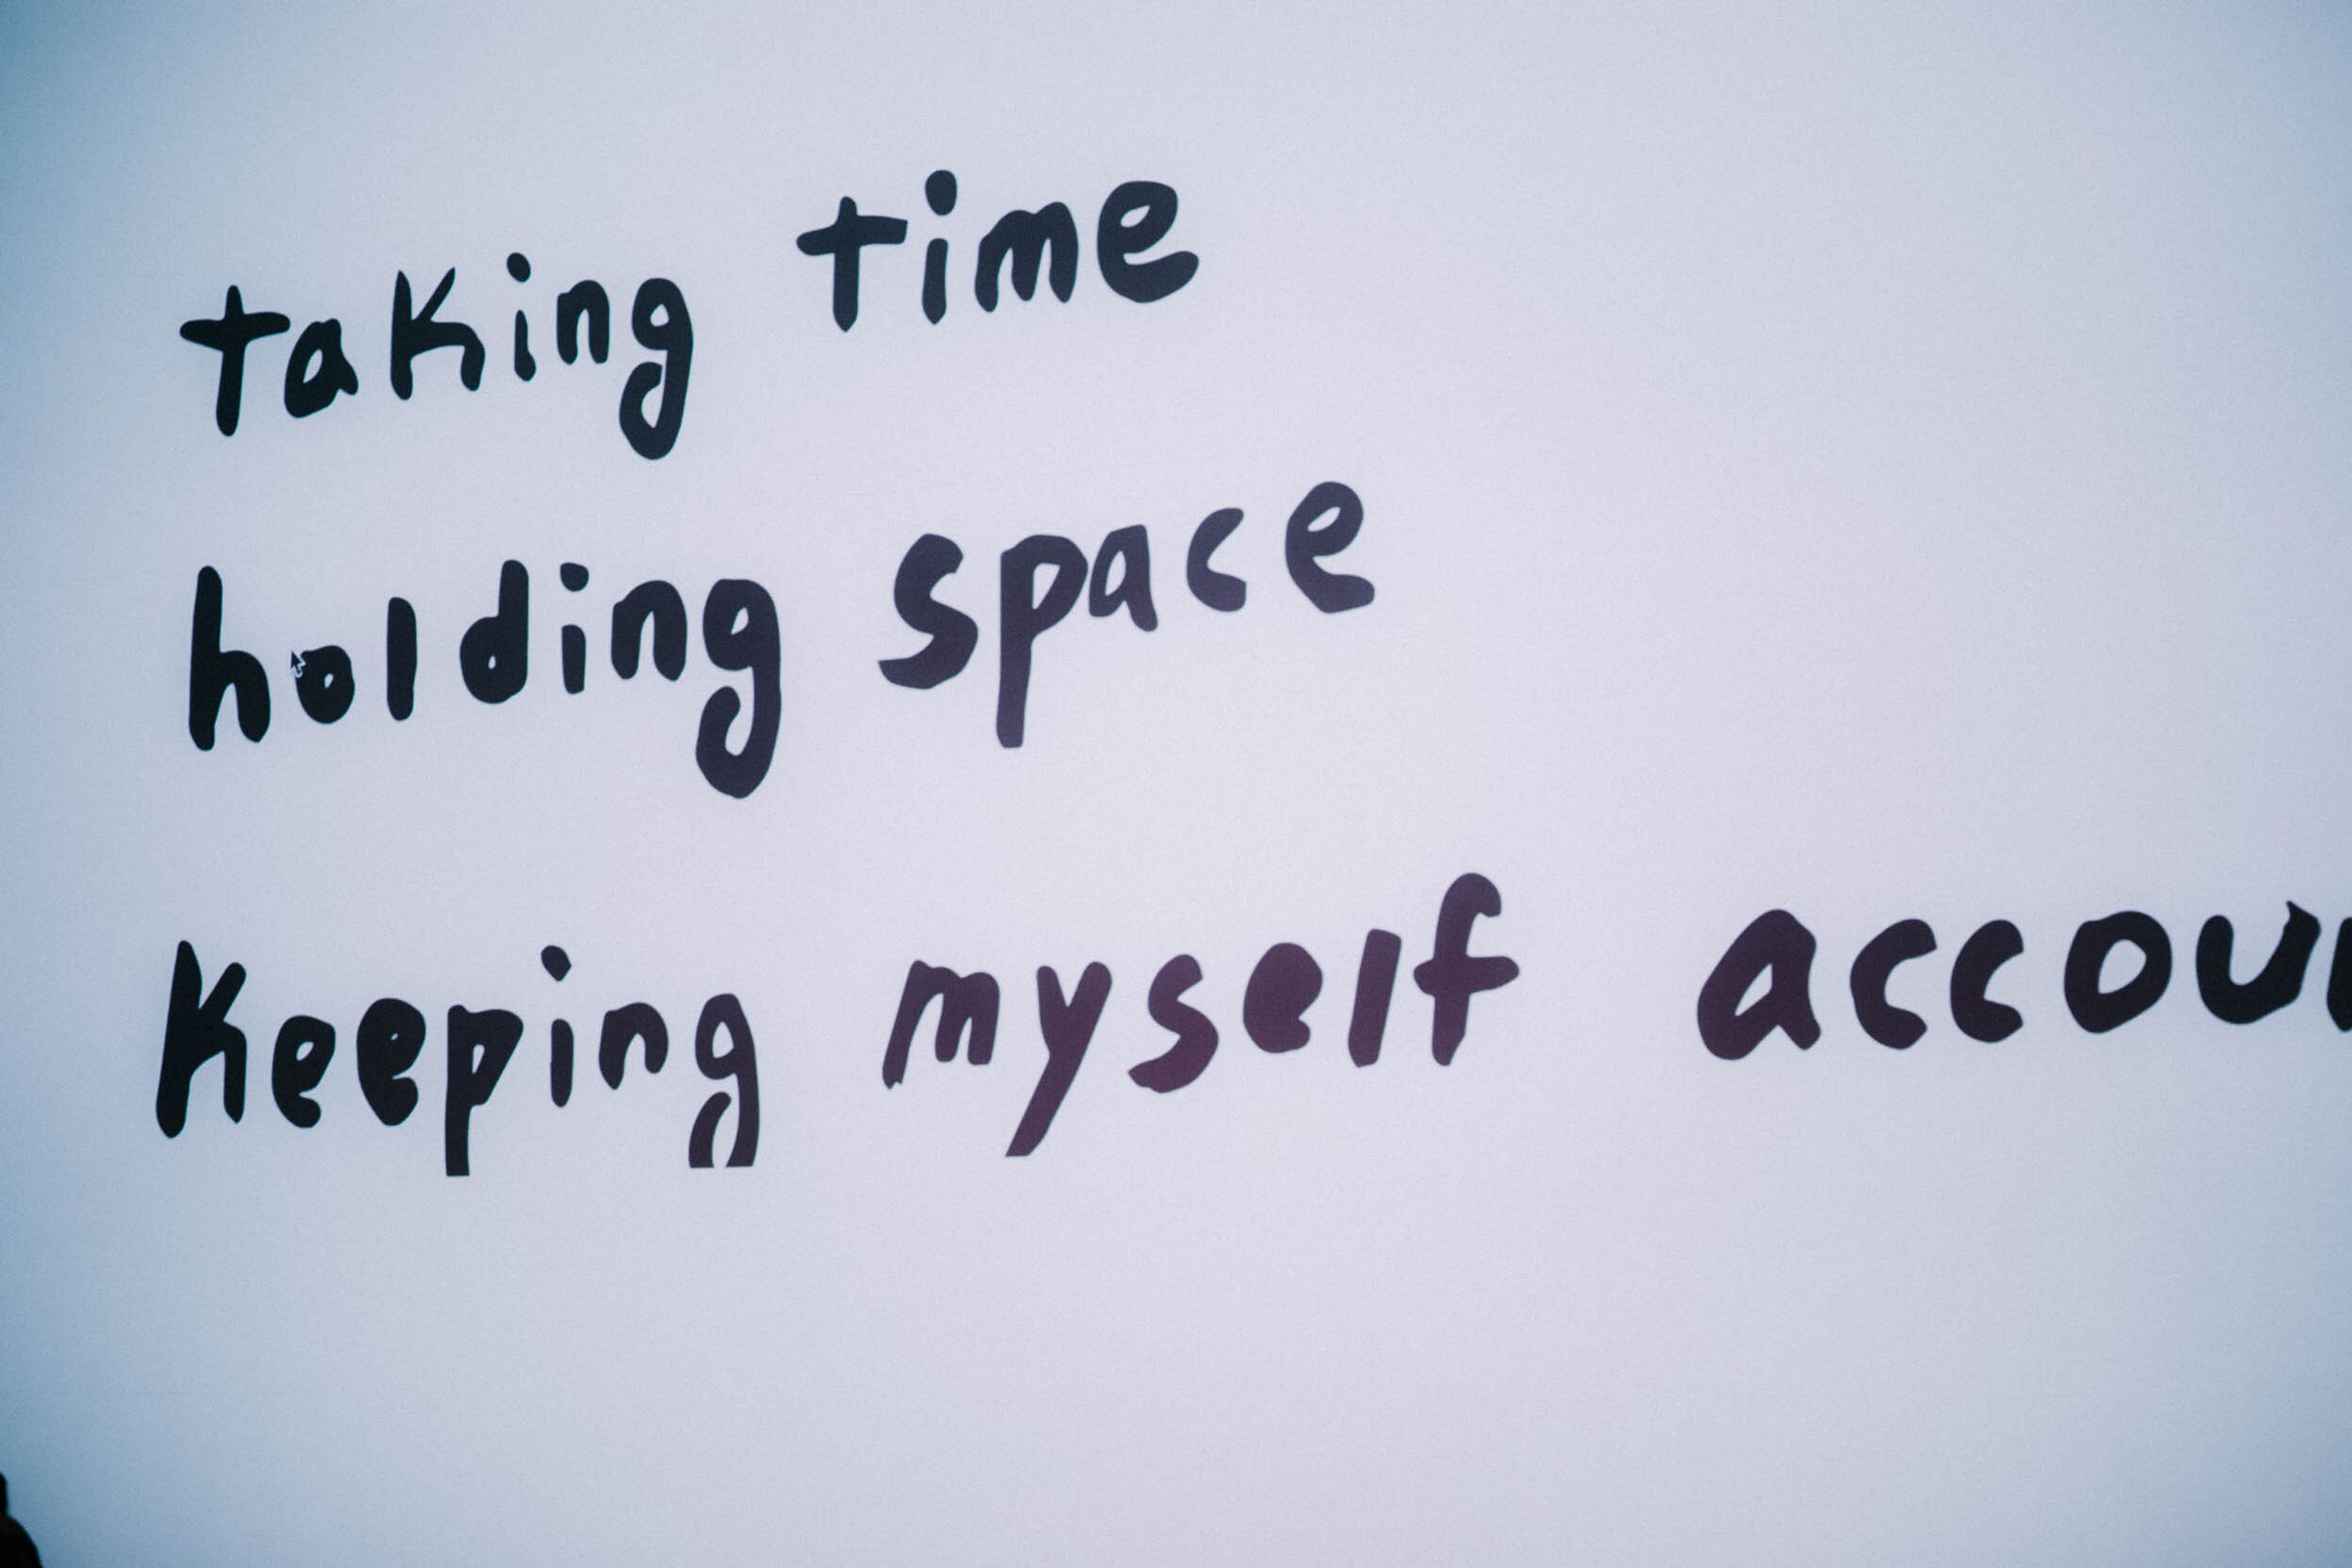 """Black writing on a grey background says, """"taking time, holding space, keeping myself accountable."""""""